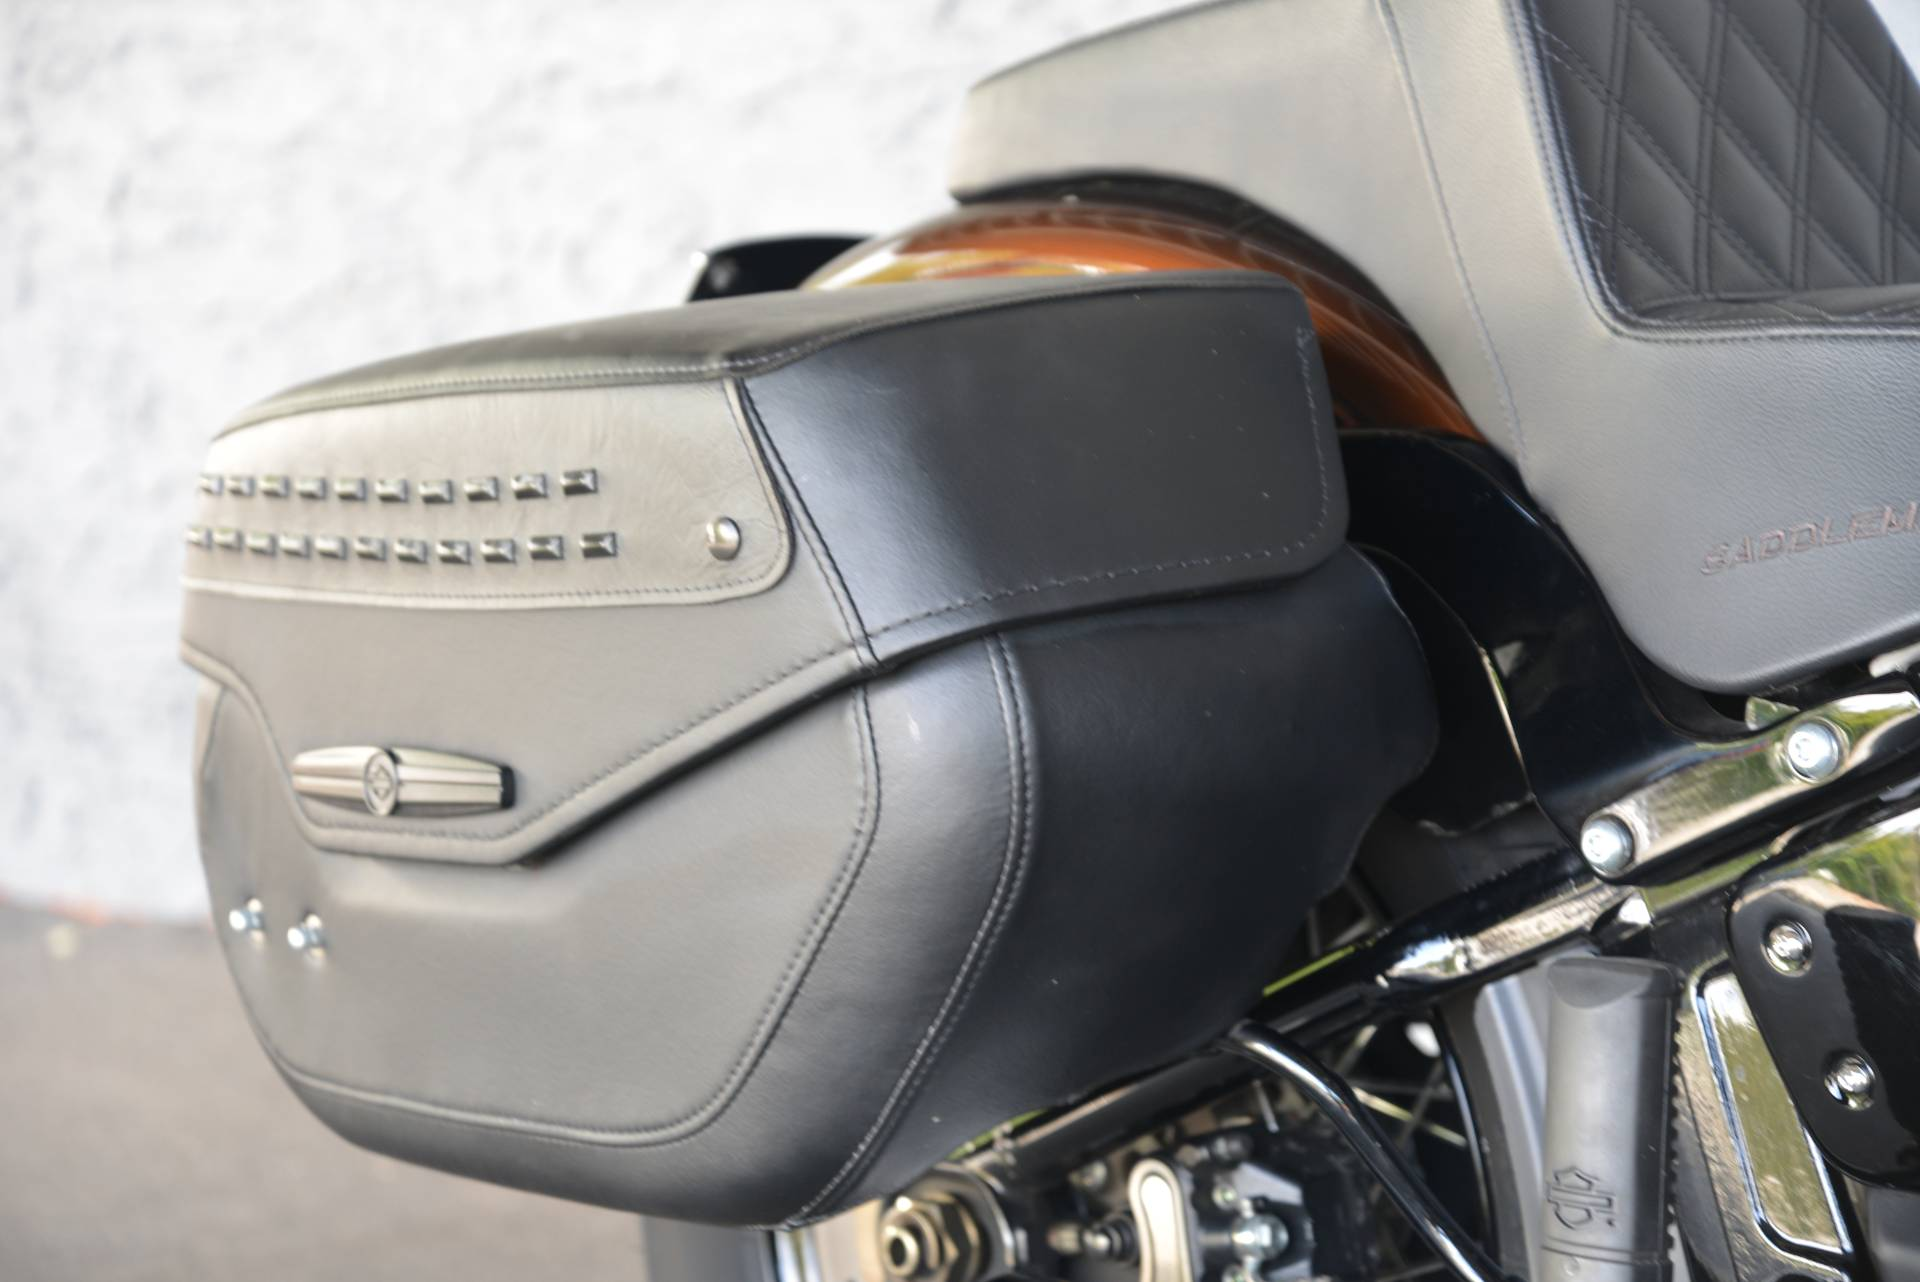 2019 Harley-Davidson HERITAGE SOFTAIL in Lakewood, New Jersey - Photo 9